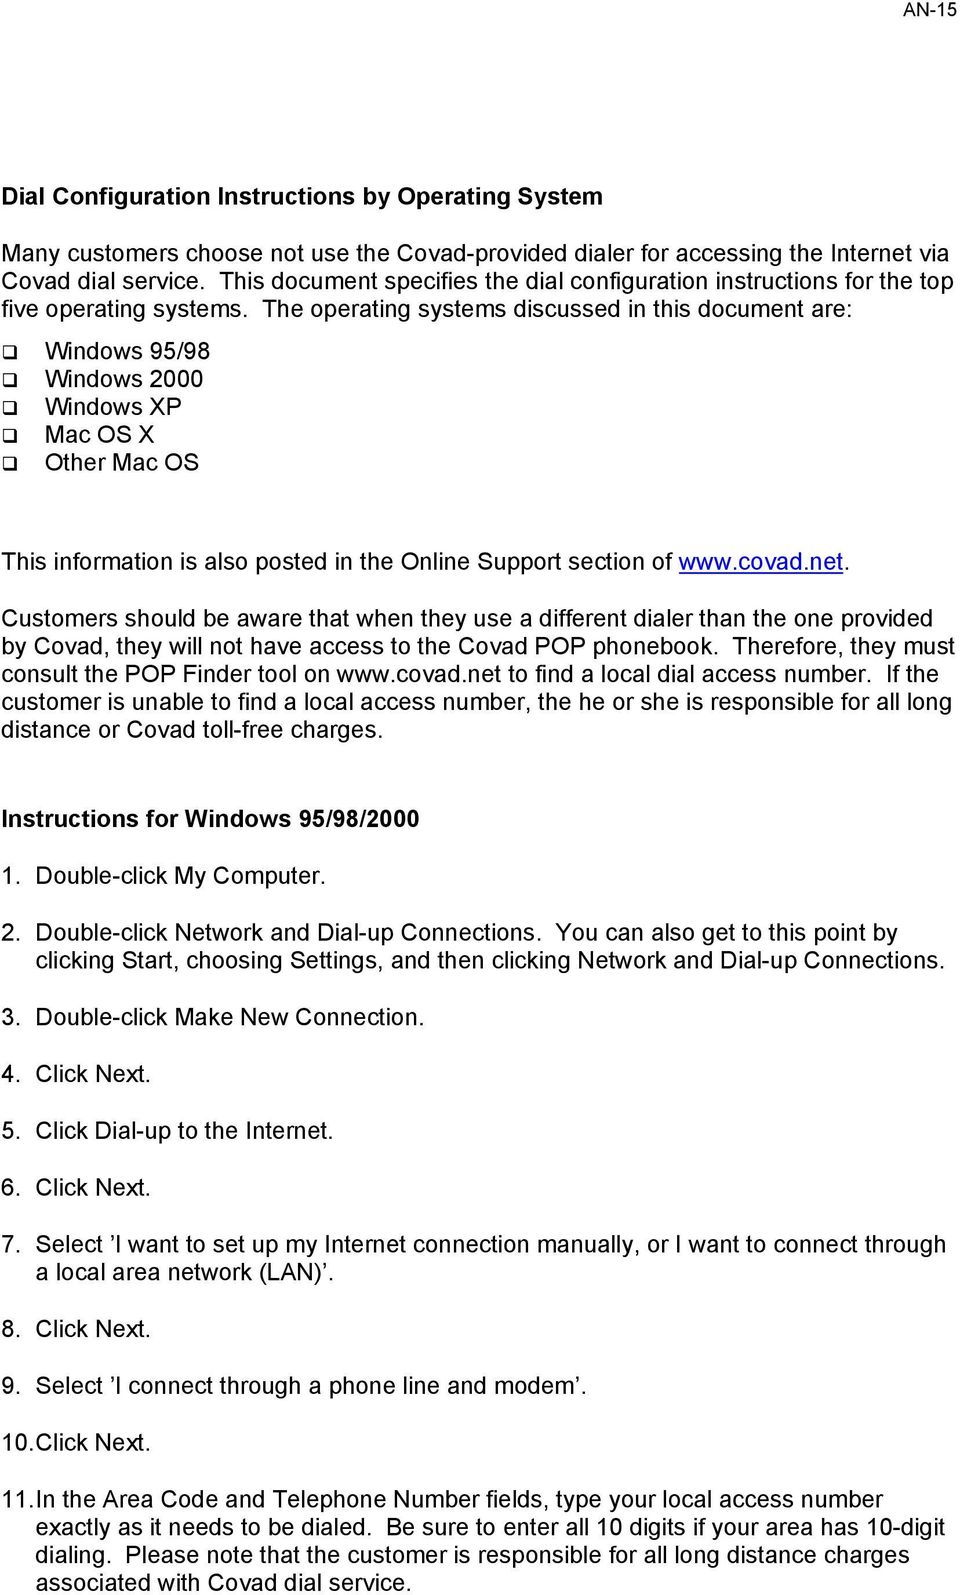 The operating systems discussed in this document are: Windows 95/98 Windows 2000 Windows XP Mac OS X Other Mac OS This information is also posted in the Online Support section of www.covad.net.